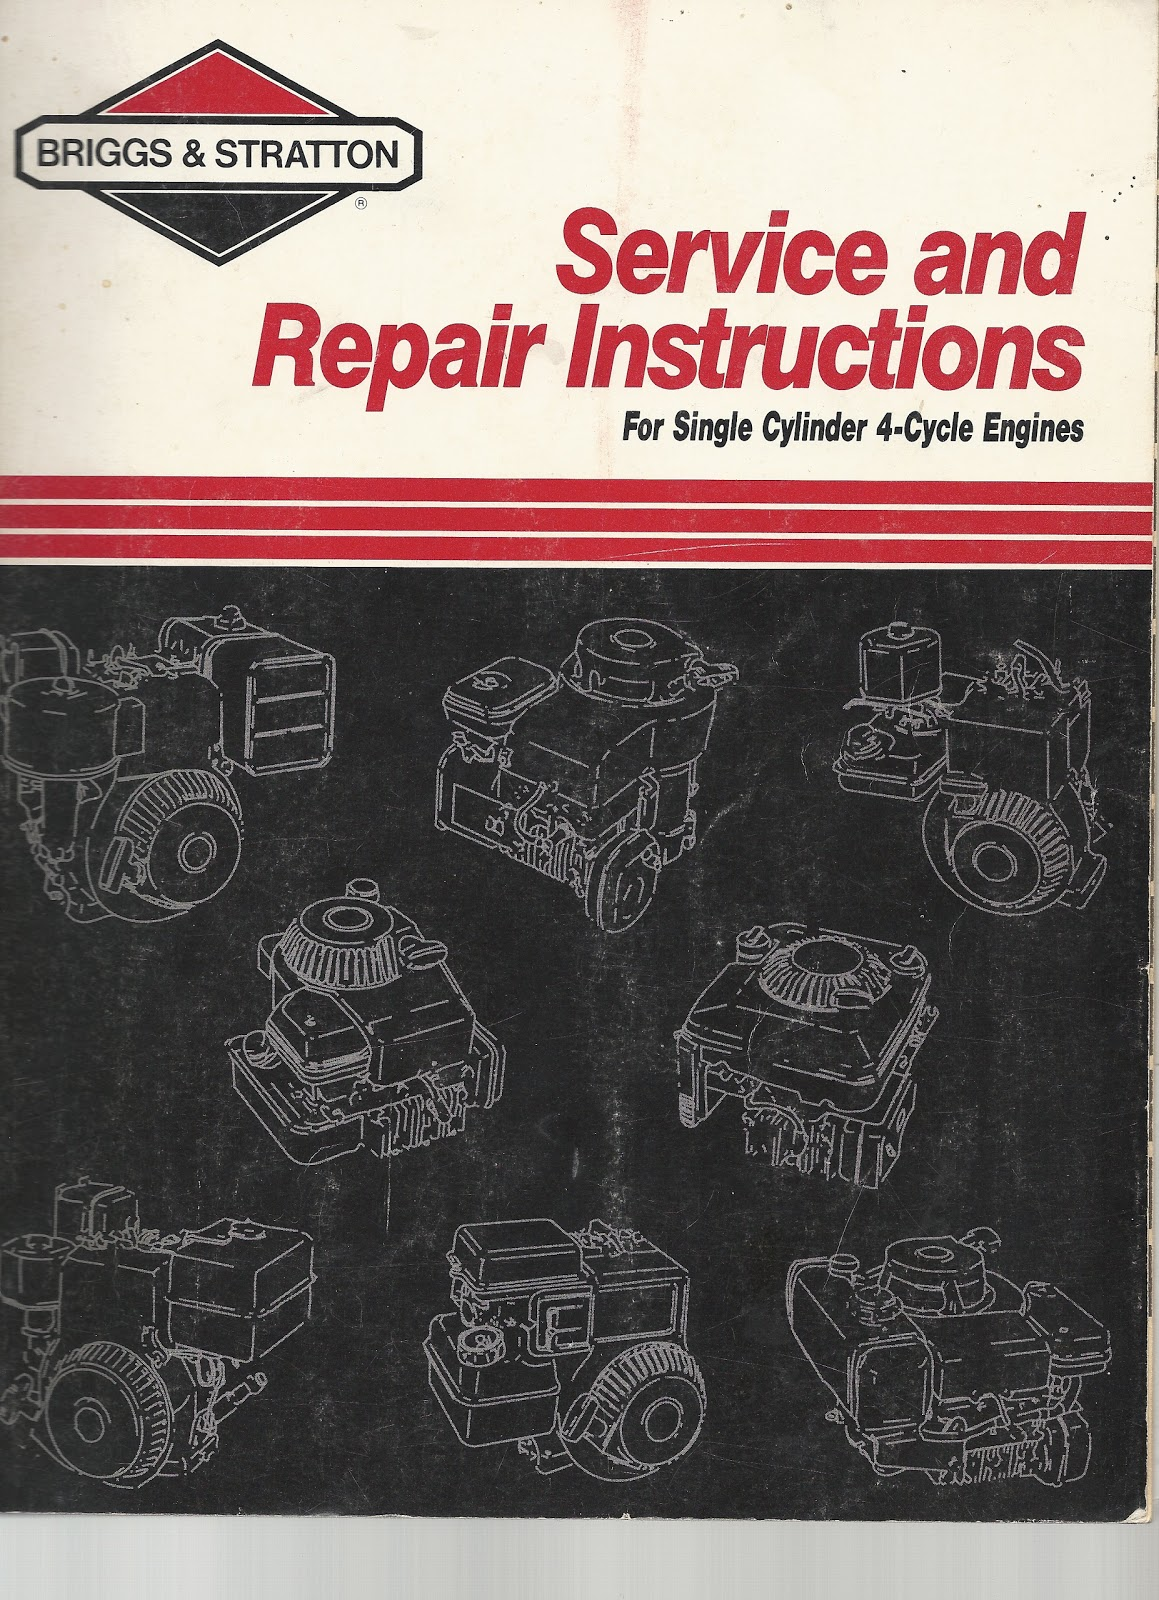 4 Stroke Rebuild Post The Fourth Manual Guide